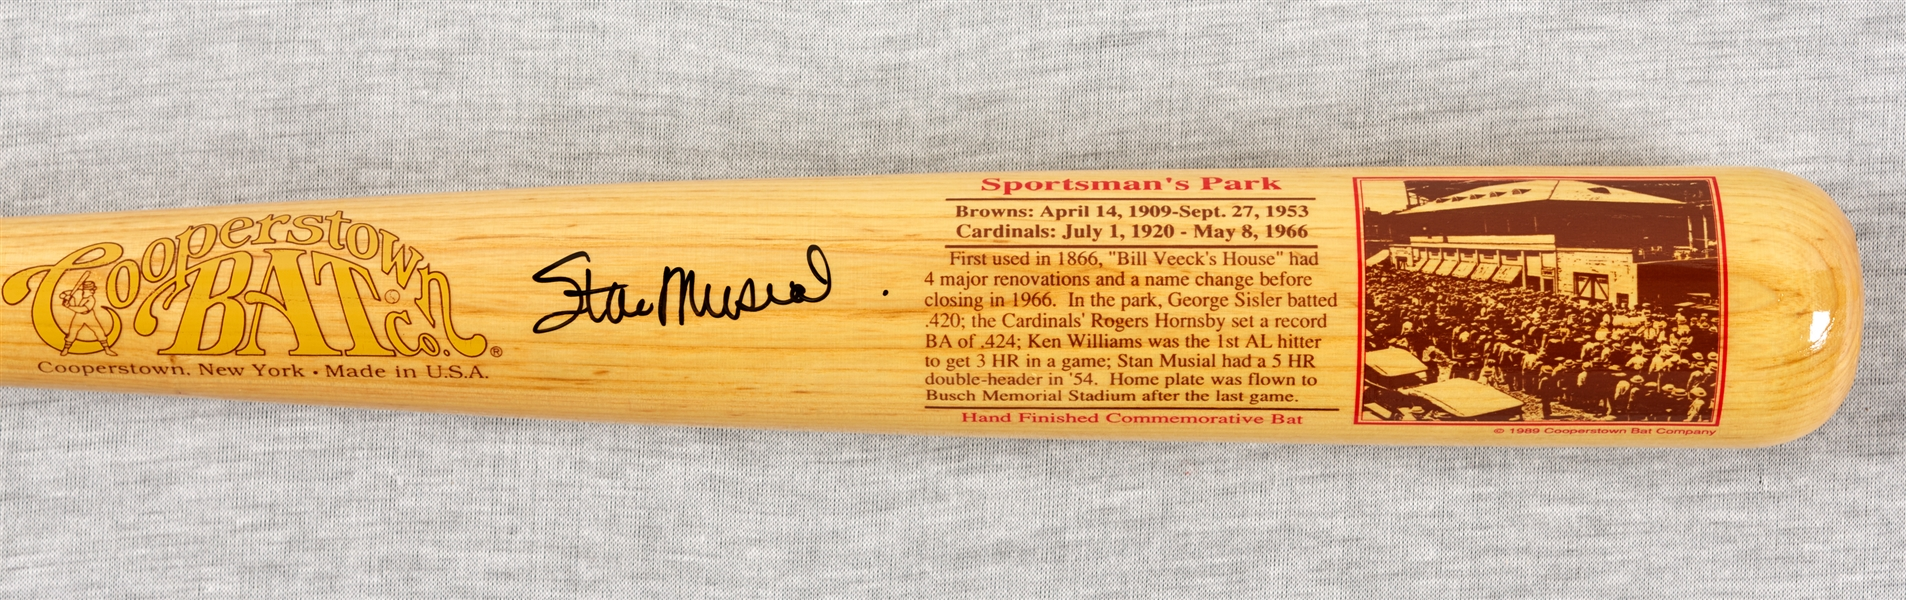 Stan Musial Signed Cooperstown Bat Co. Sportsman's Park Bat (107/1000) (BAS)